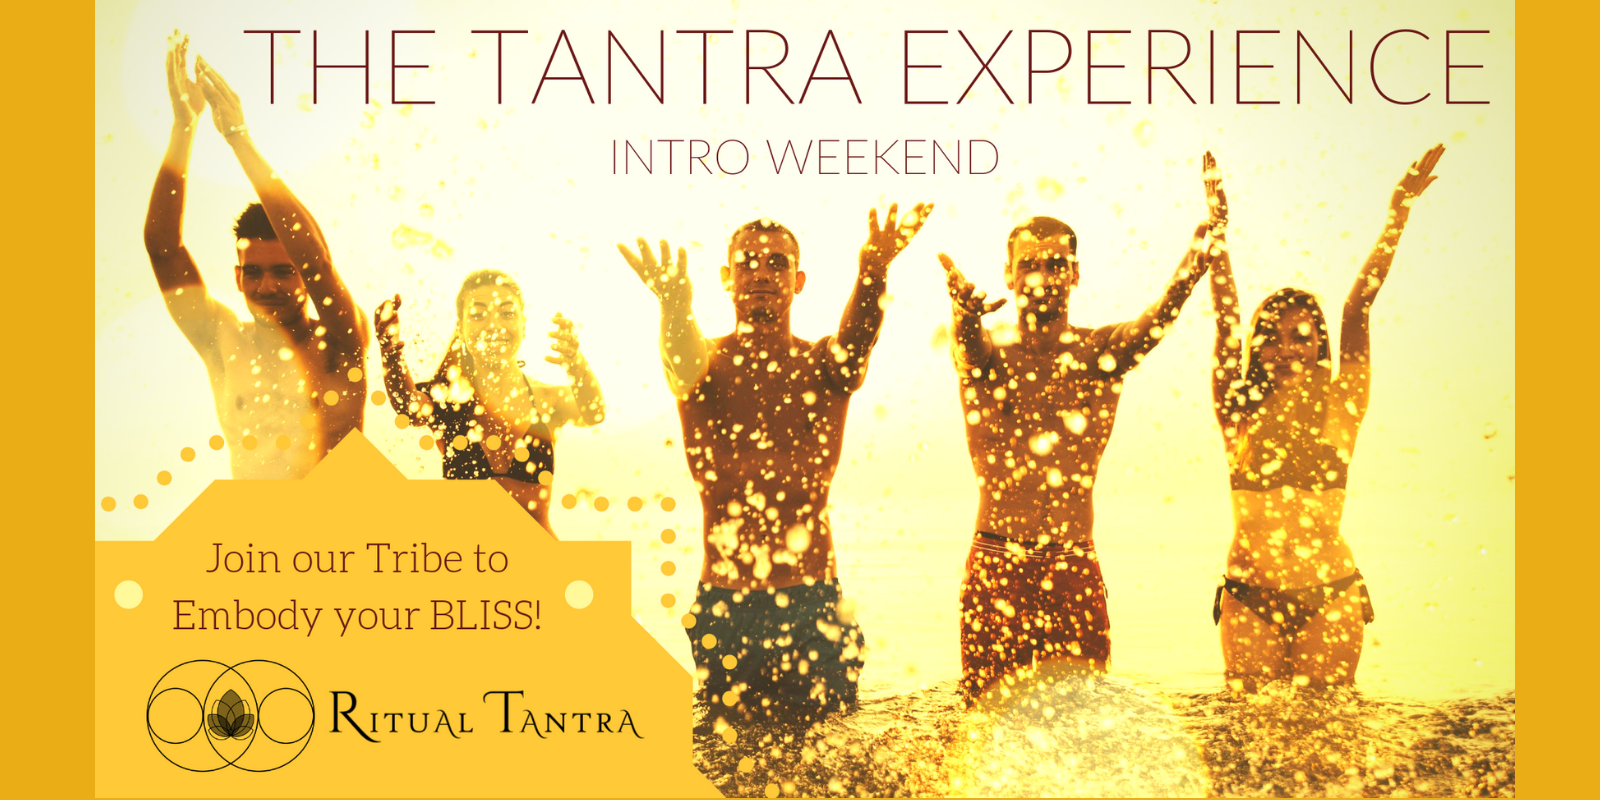 Tantra Experience Eventbriteplain.png